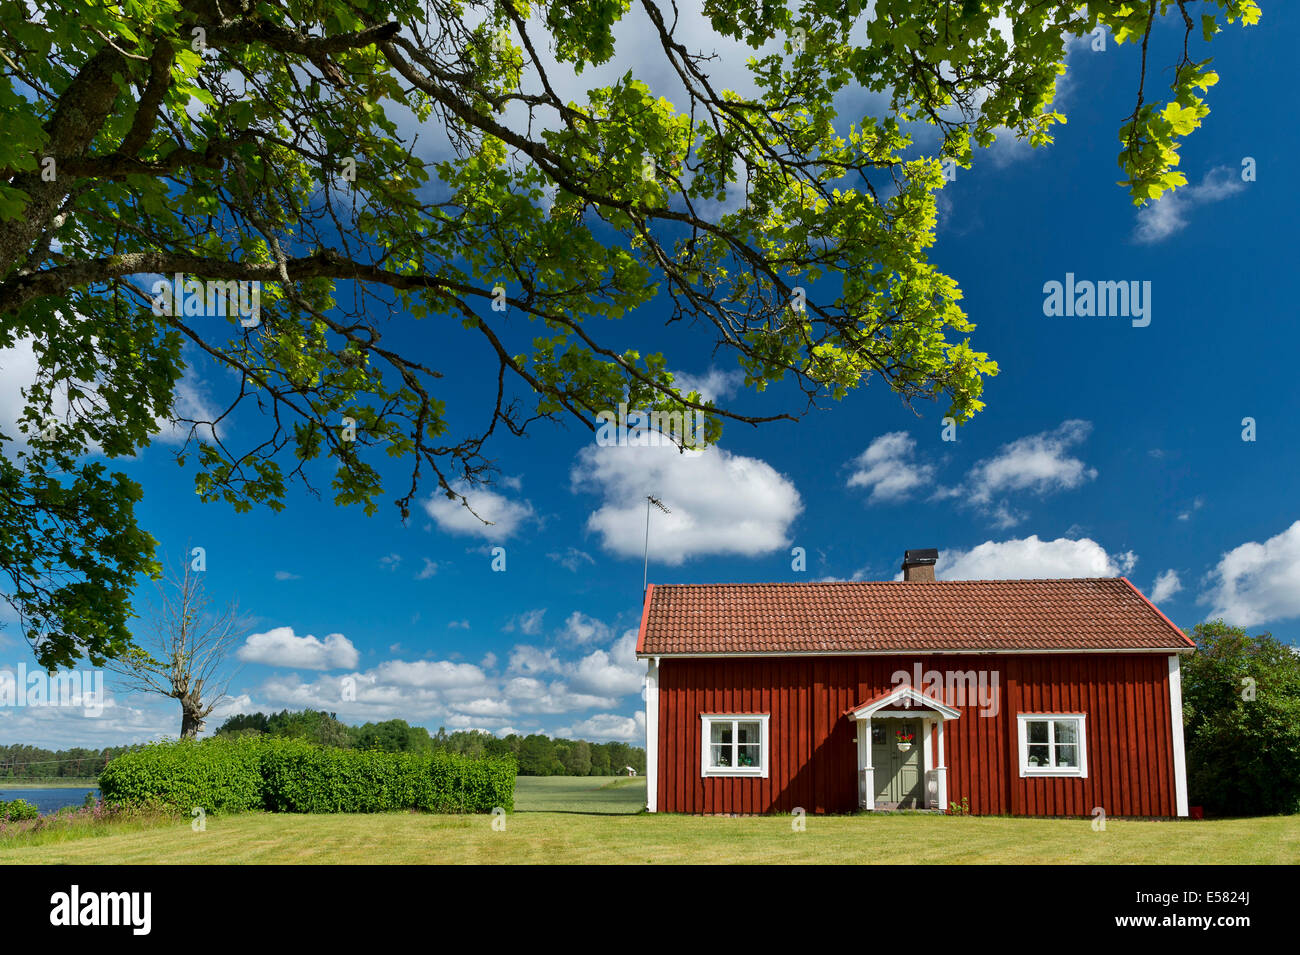 House painted Falu red, Kake Åsnen, Smaland, Sweden - Stock Image